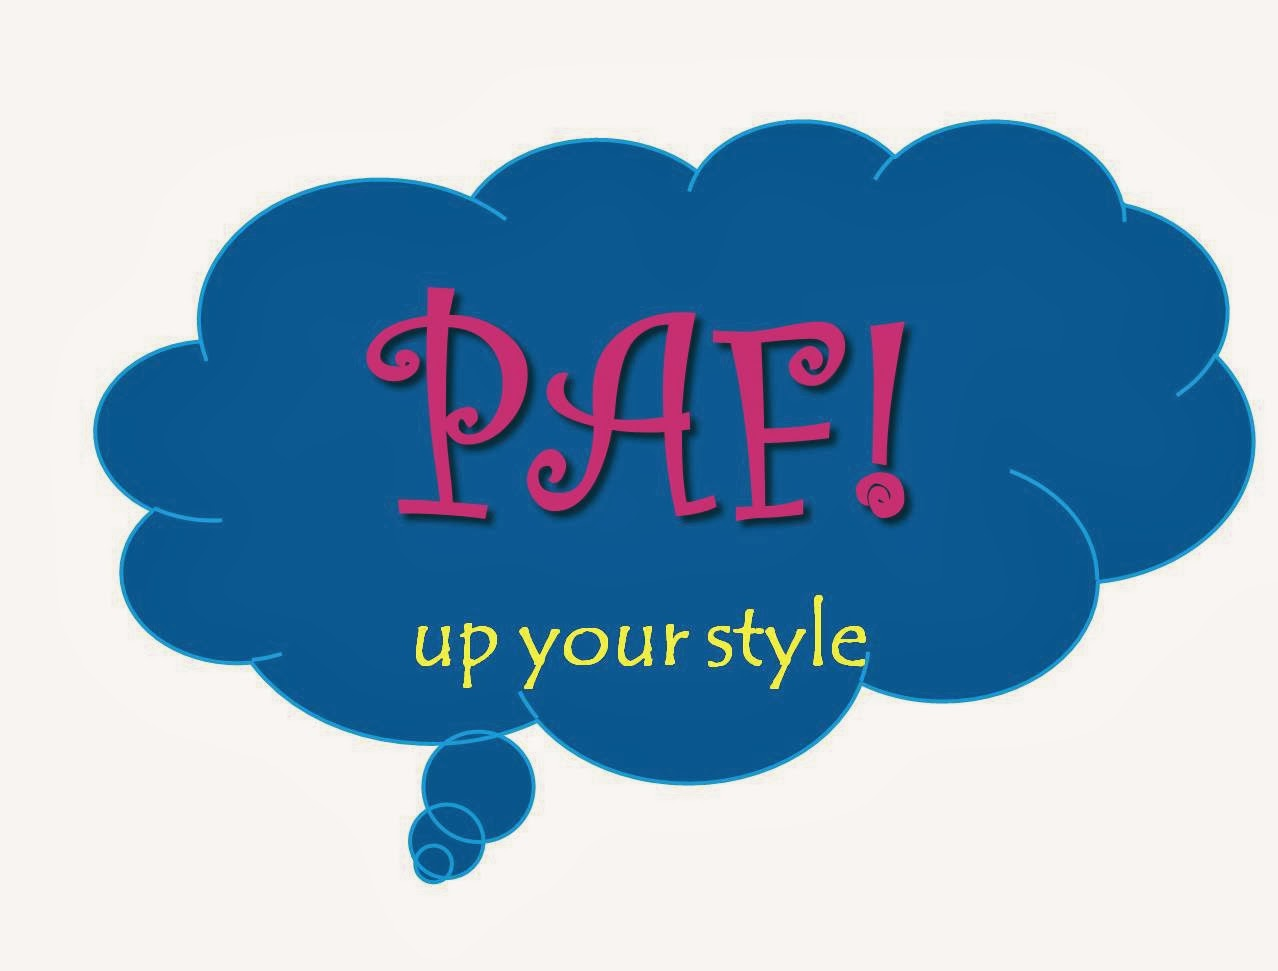 PAF! up your style